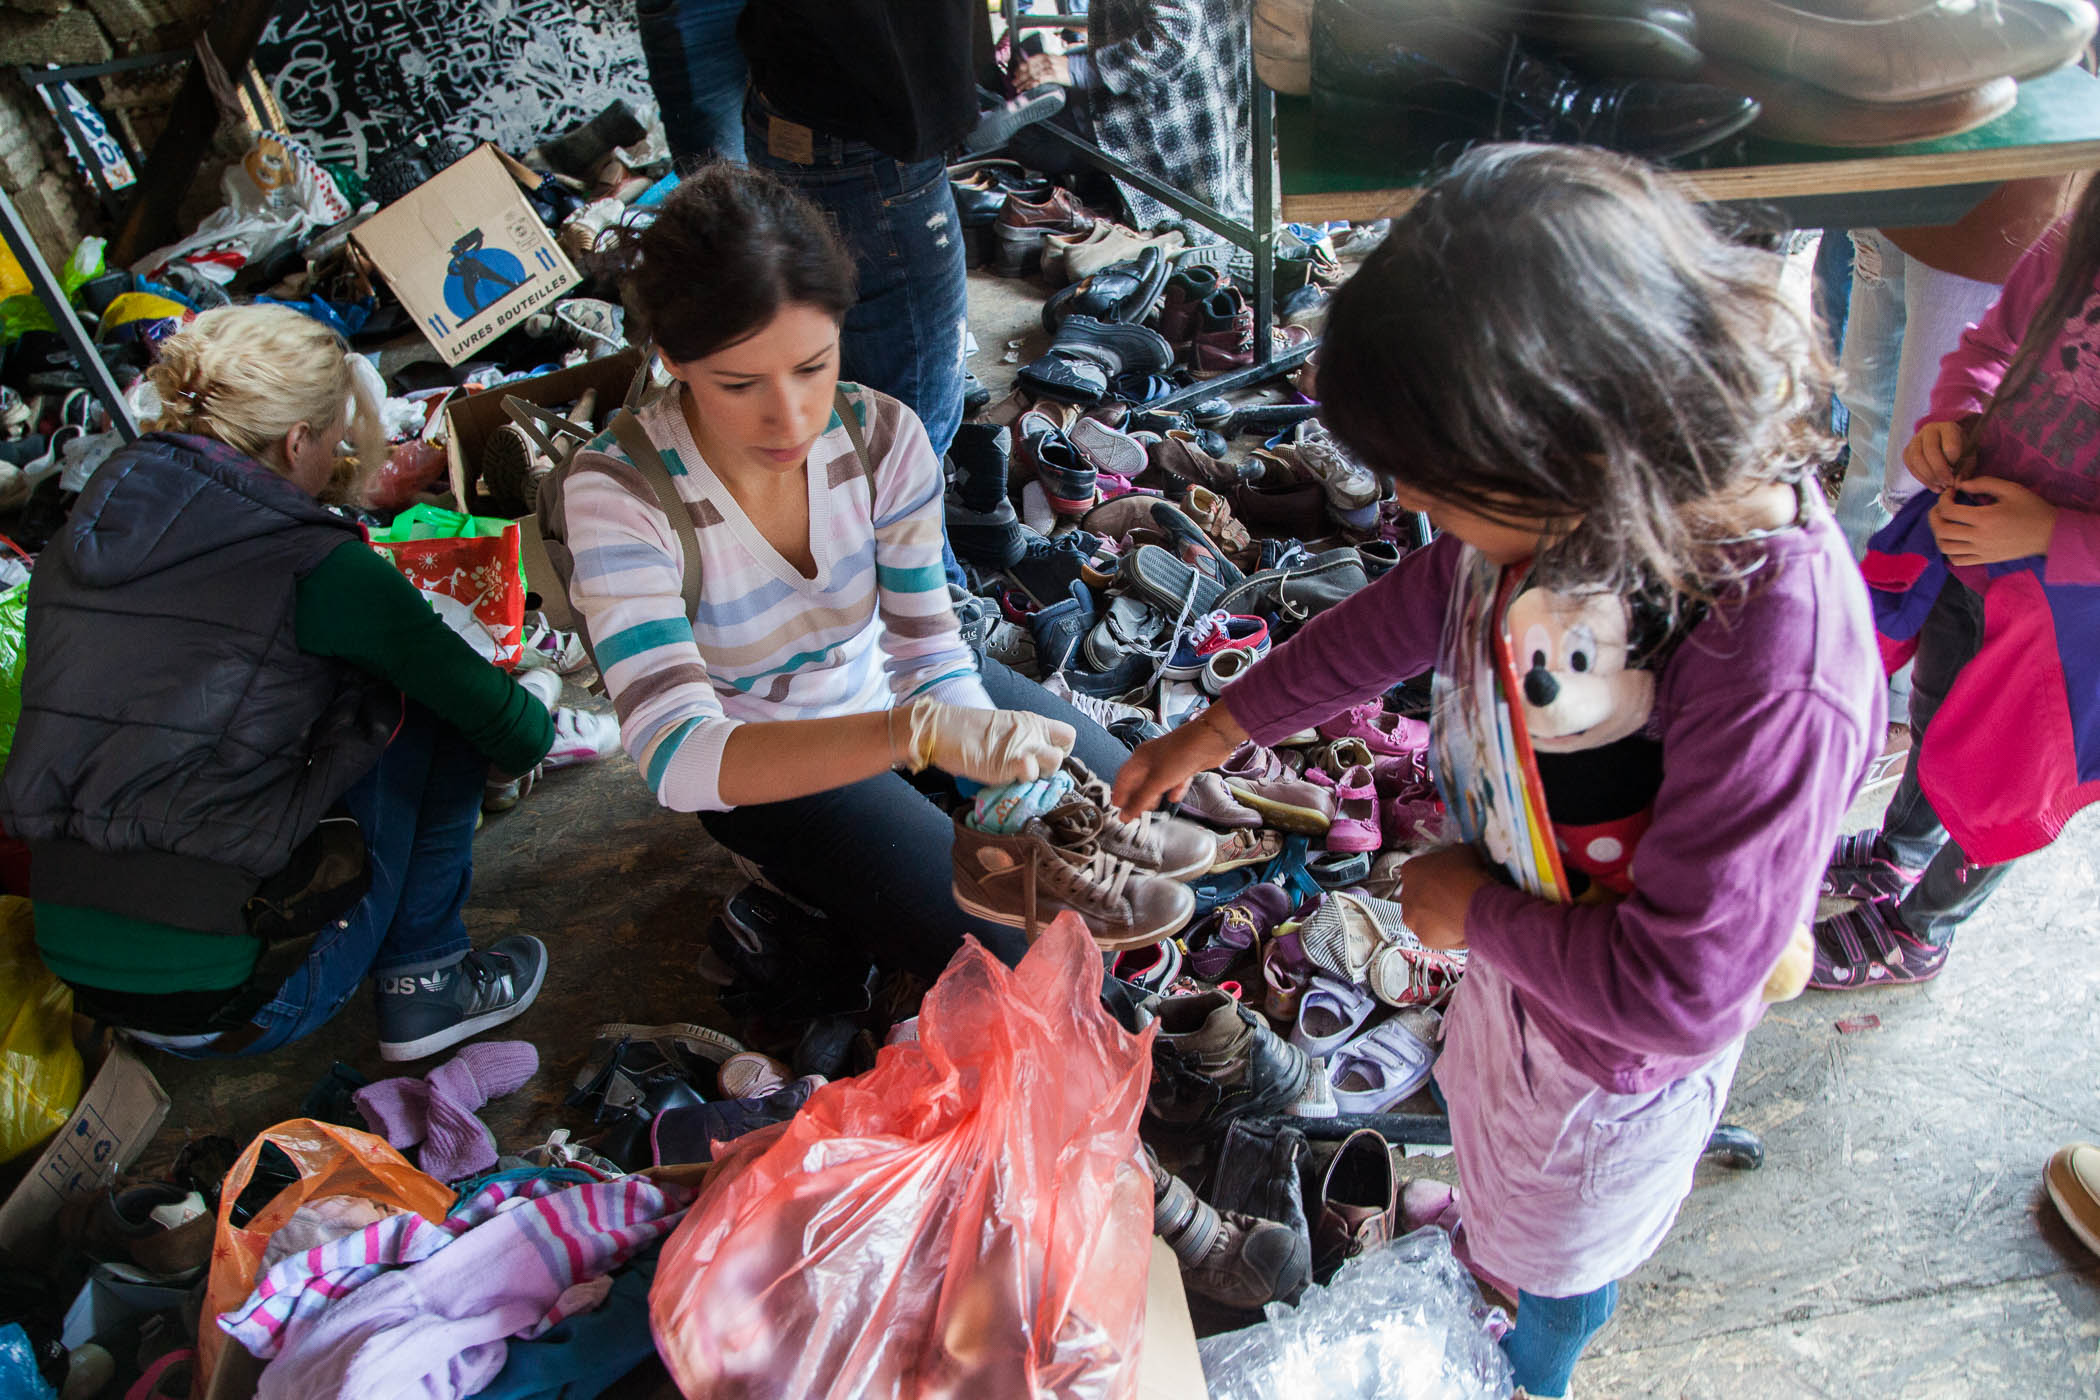 A volunteer helps a young Syrian girl find new shoes and socks at Miksaliste, a hub for the refugee response in Belgrade, started by Refugee Aid Serbia, an umbrella group of local charities